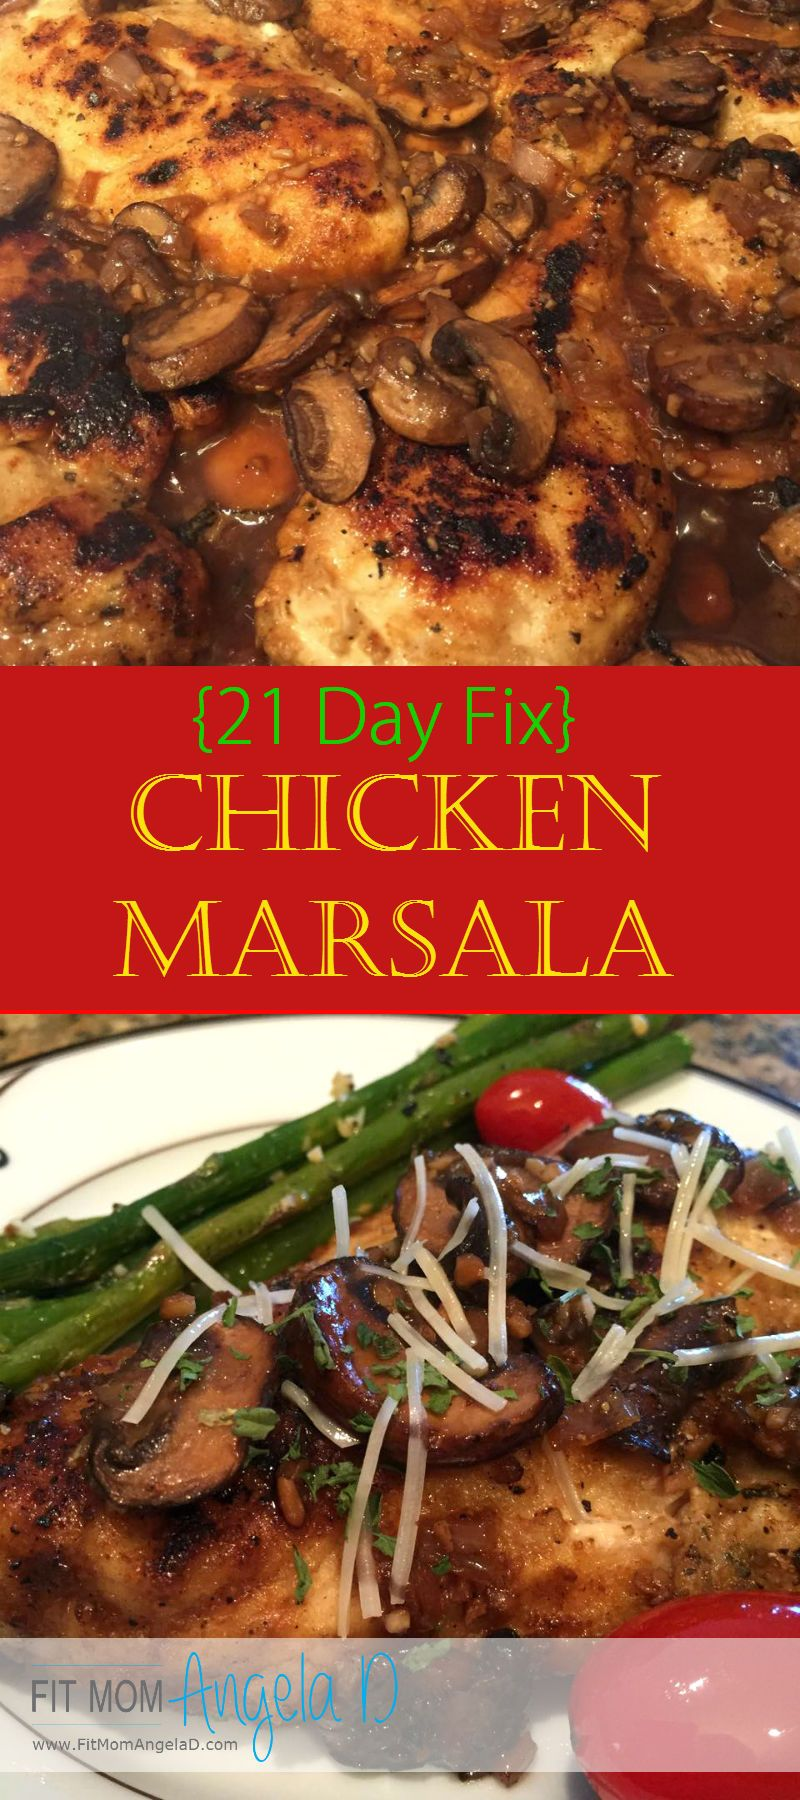 21 Day Fix Chicken Marsala Recipe 21 Day Fix Meals 21 Day Fix Meal Plan Recipes